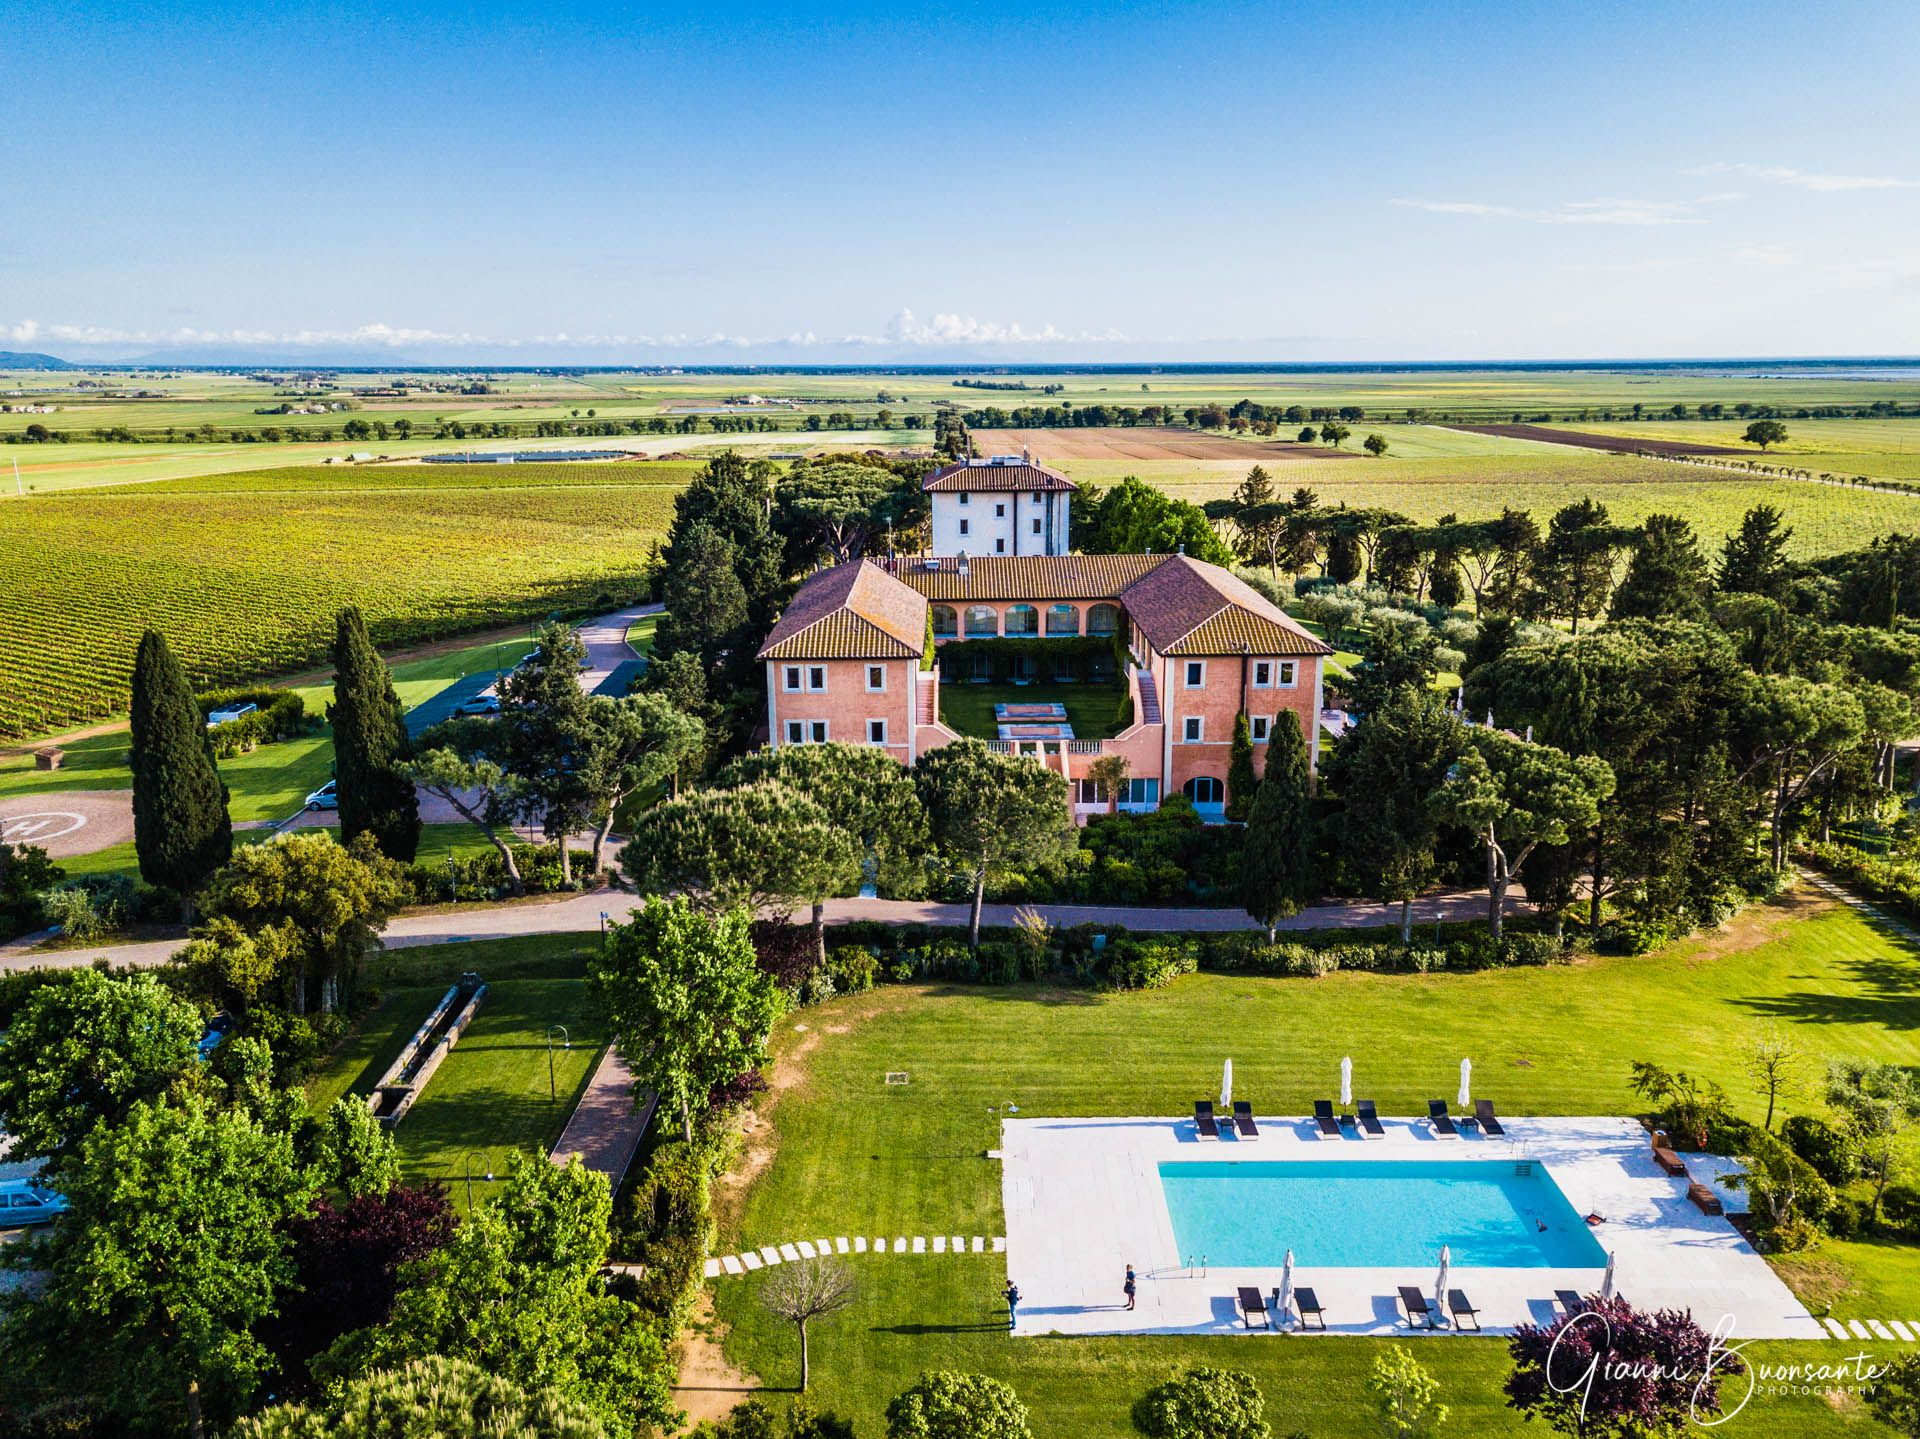 L'Andana Resort in Tuscany Maremma Aerial view. Hotel Photography Gianni Buonsante